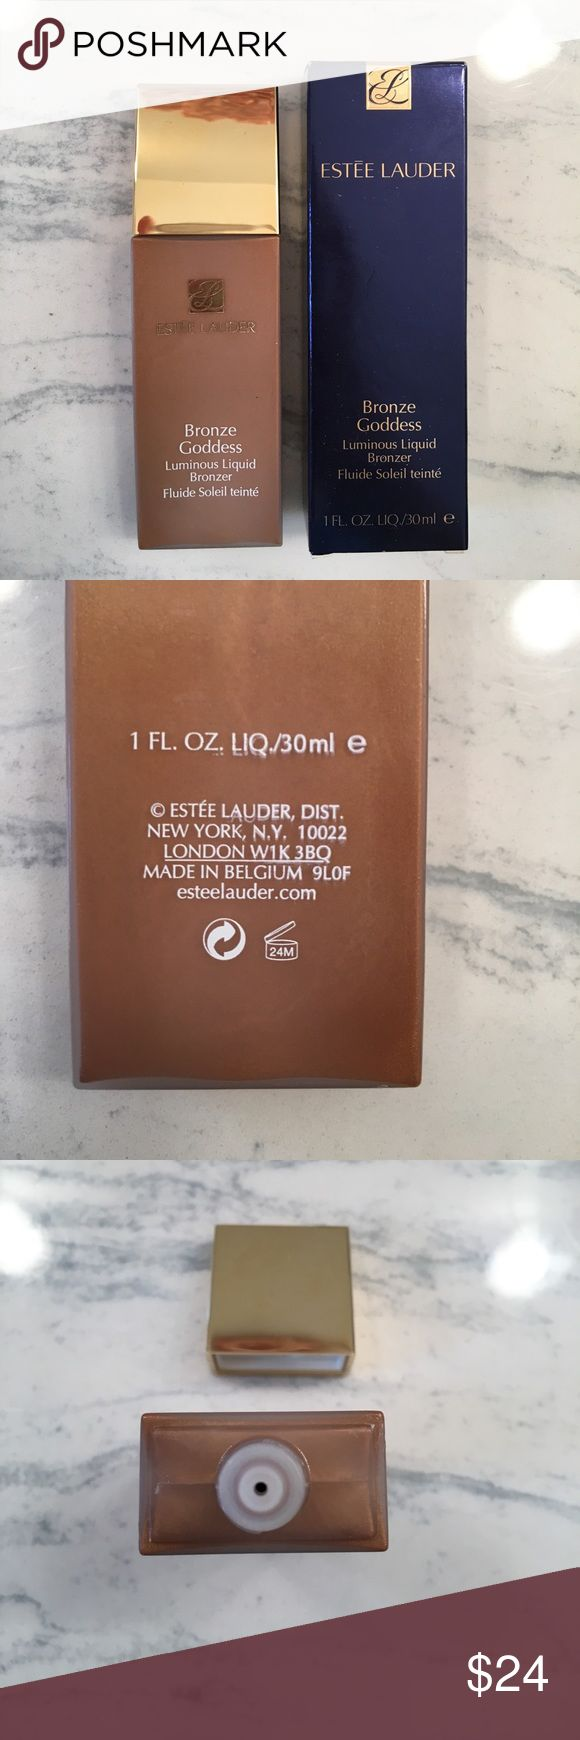 New Estée Lauder Bronzer New in box Estée Lauder bronze goddess luminous liquid Bronzer. All skin types.  Perfect alone or to mix in with tinted moisturizer, foundation, BB, or CC cream to add extra glow or color. Sephora Makeup